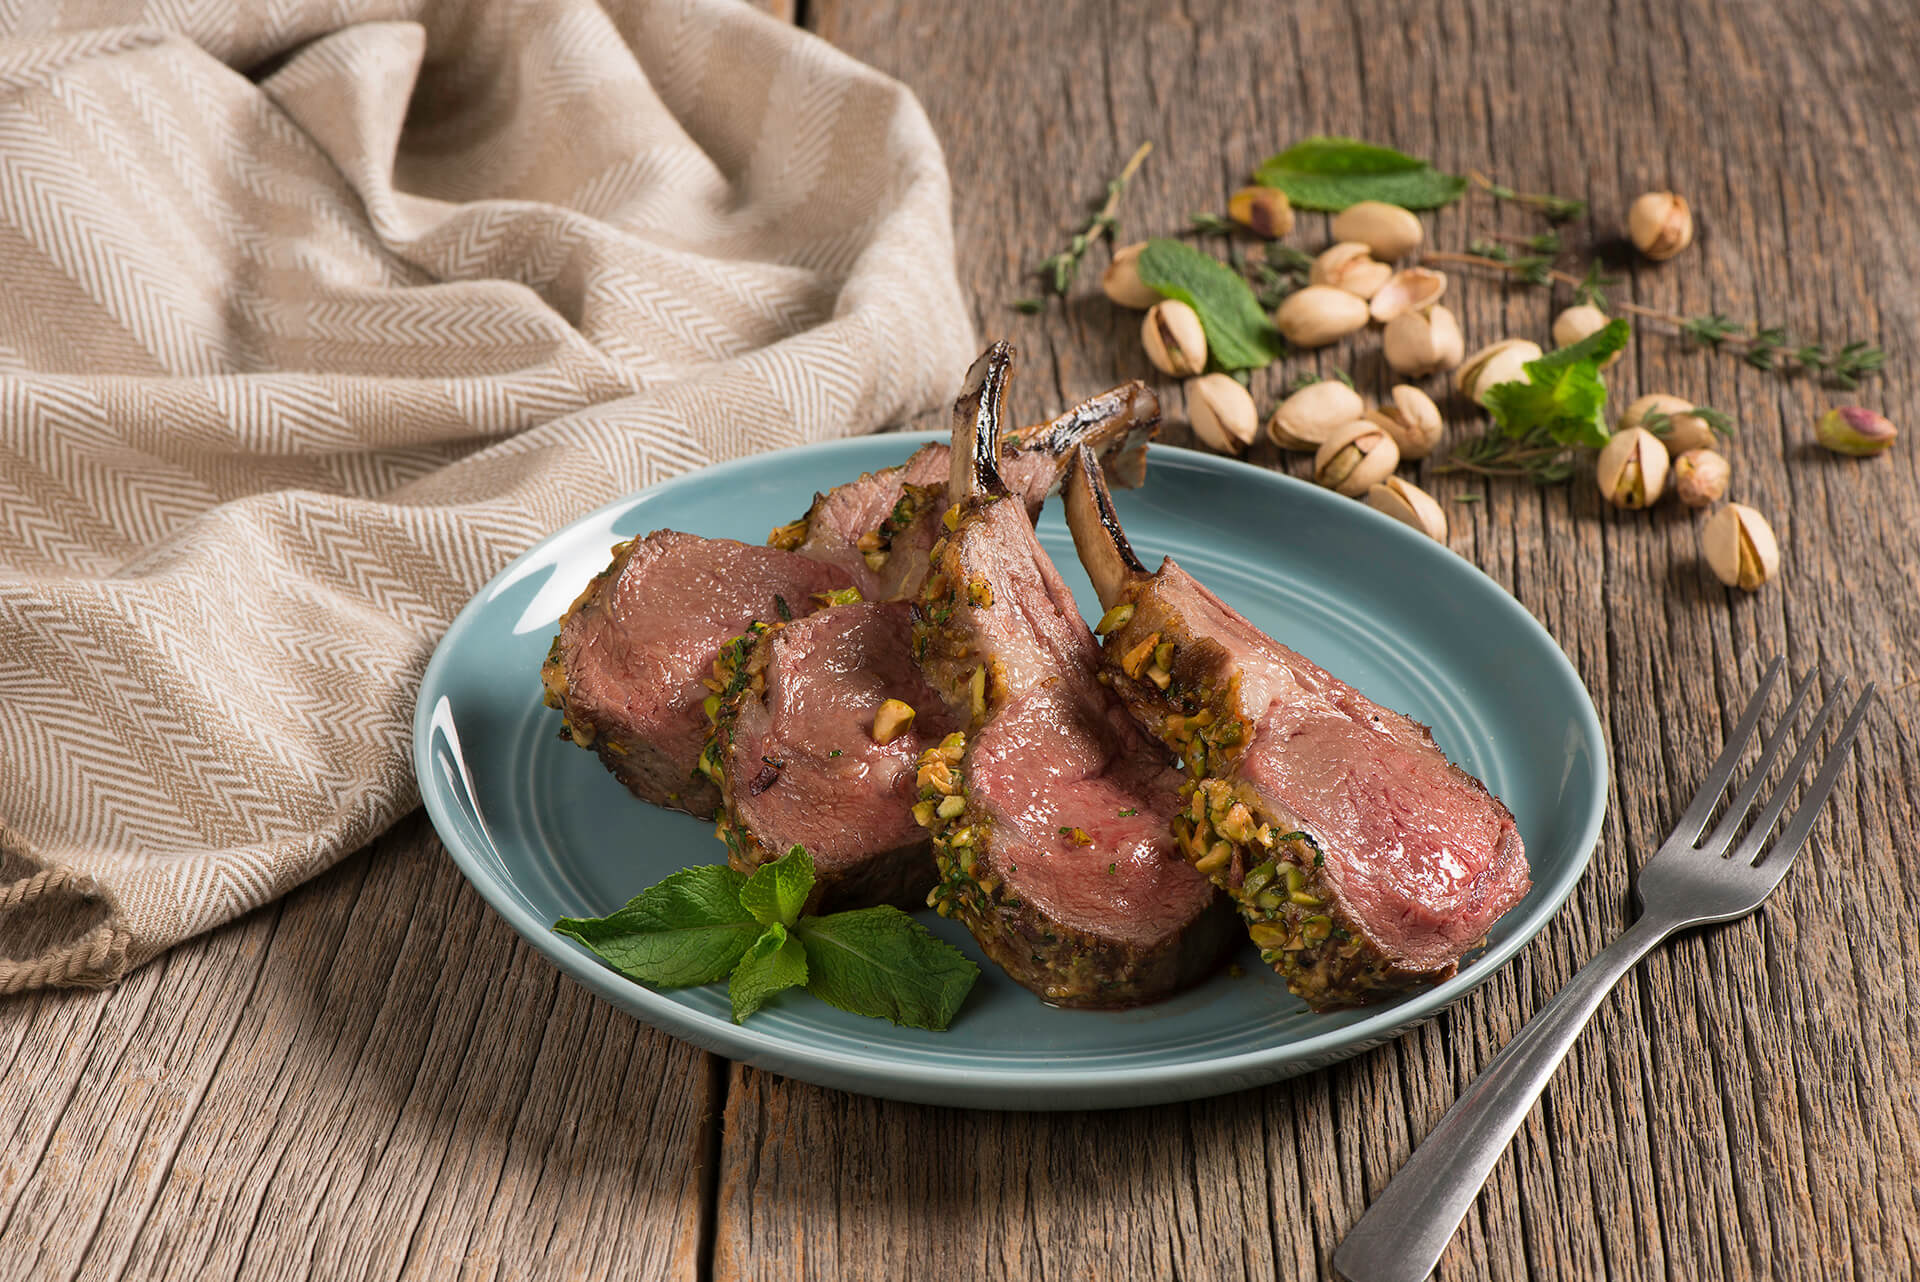 Pistachio Lime Crusted Rack of Lamb